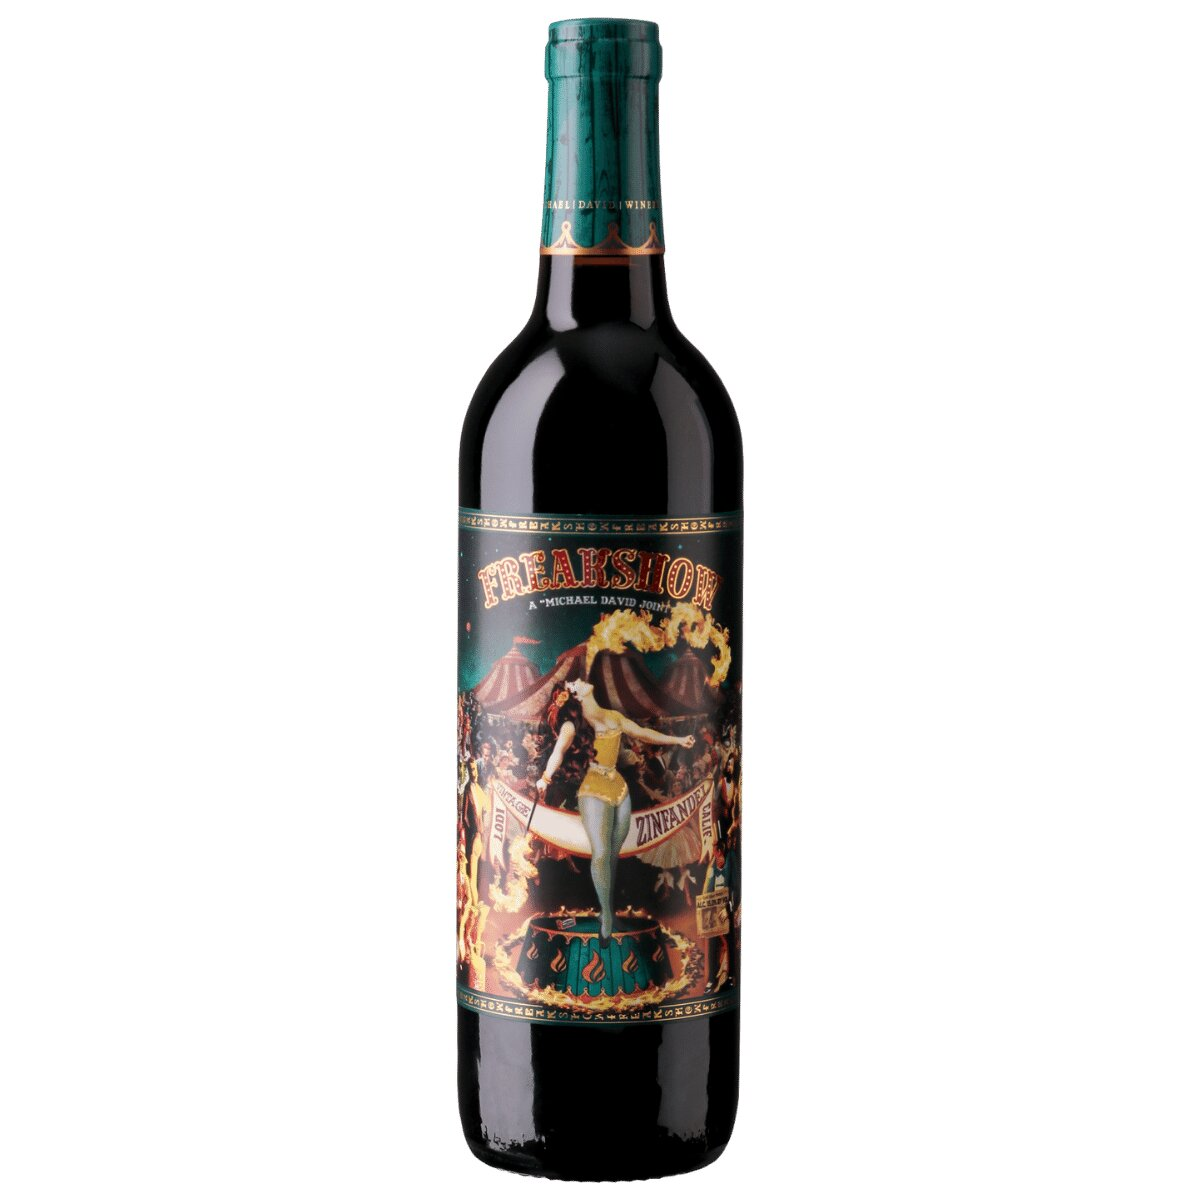 Freakshow Zinfandel Lodi California - Michael David Winery - , , , ,